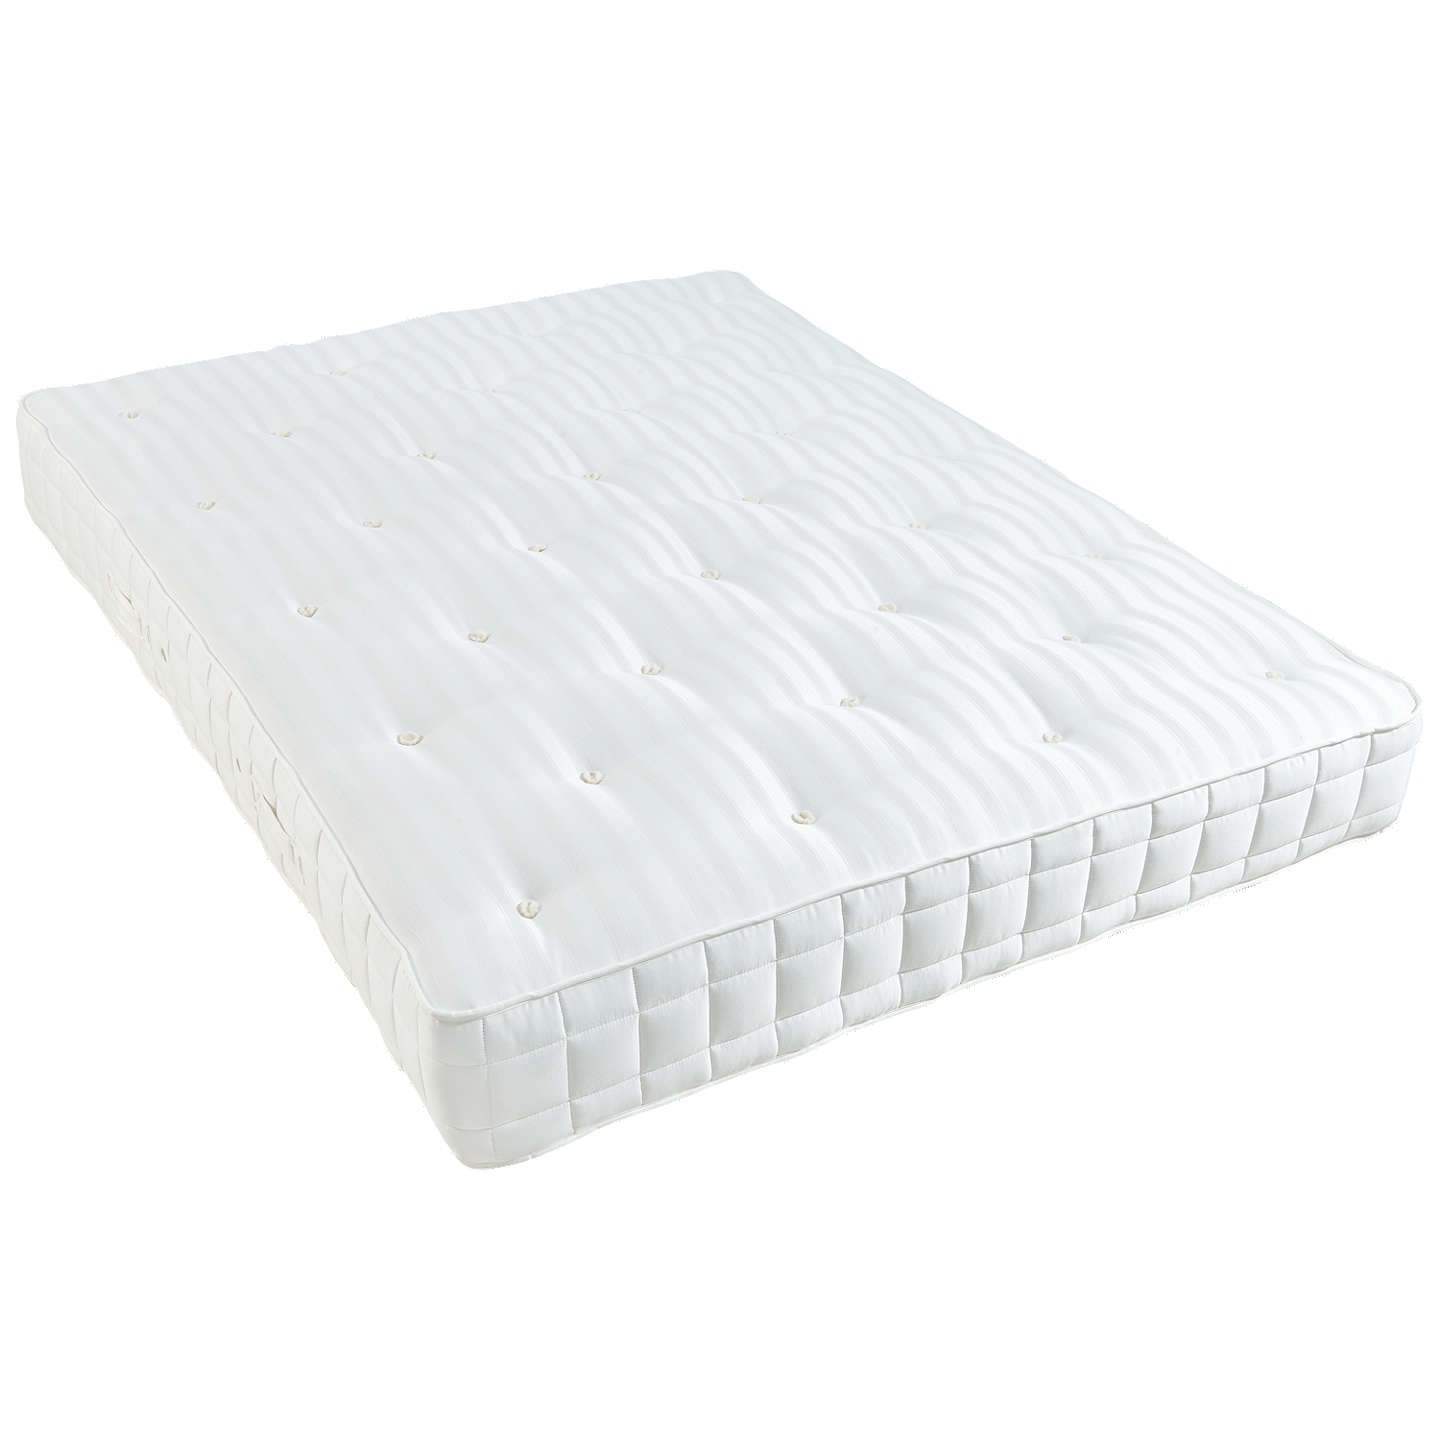 com antibacterial pad amazon dp bedsure quilted mattress soft ultra king hypoallergenic size protector breathable